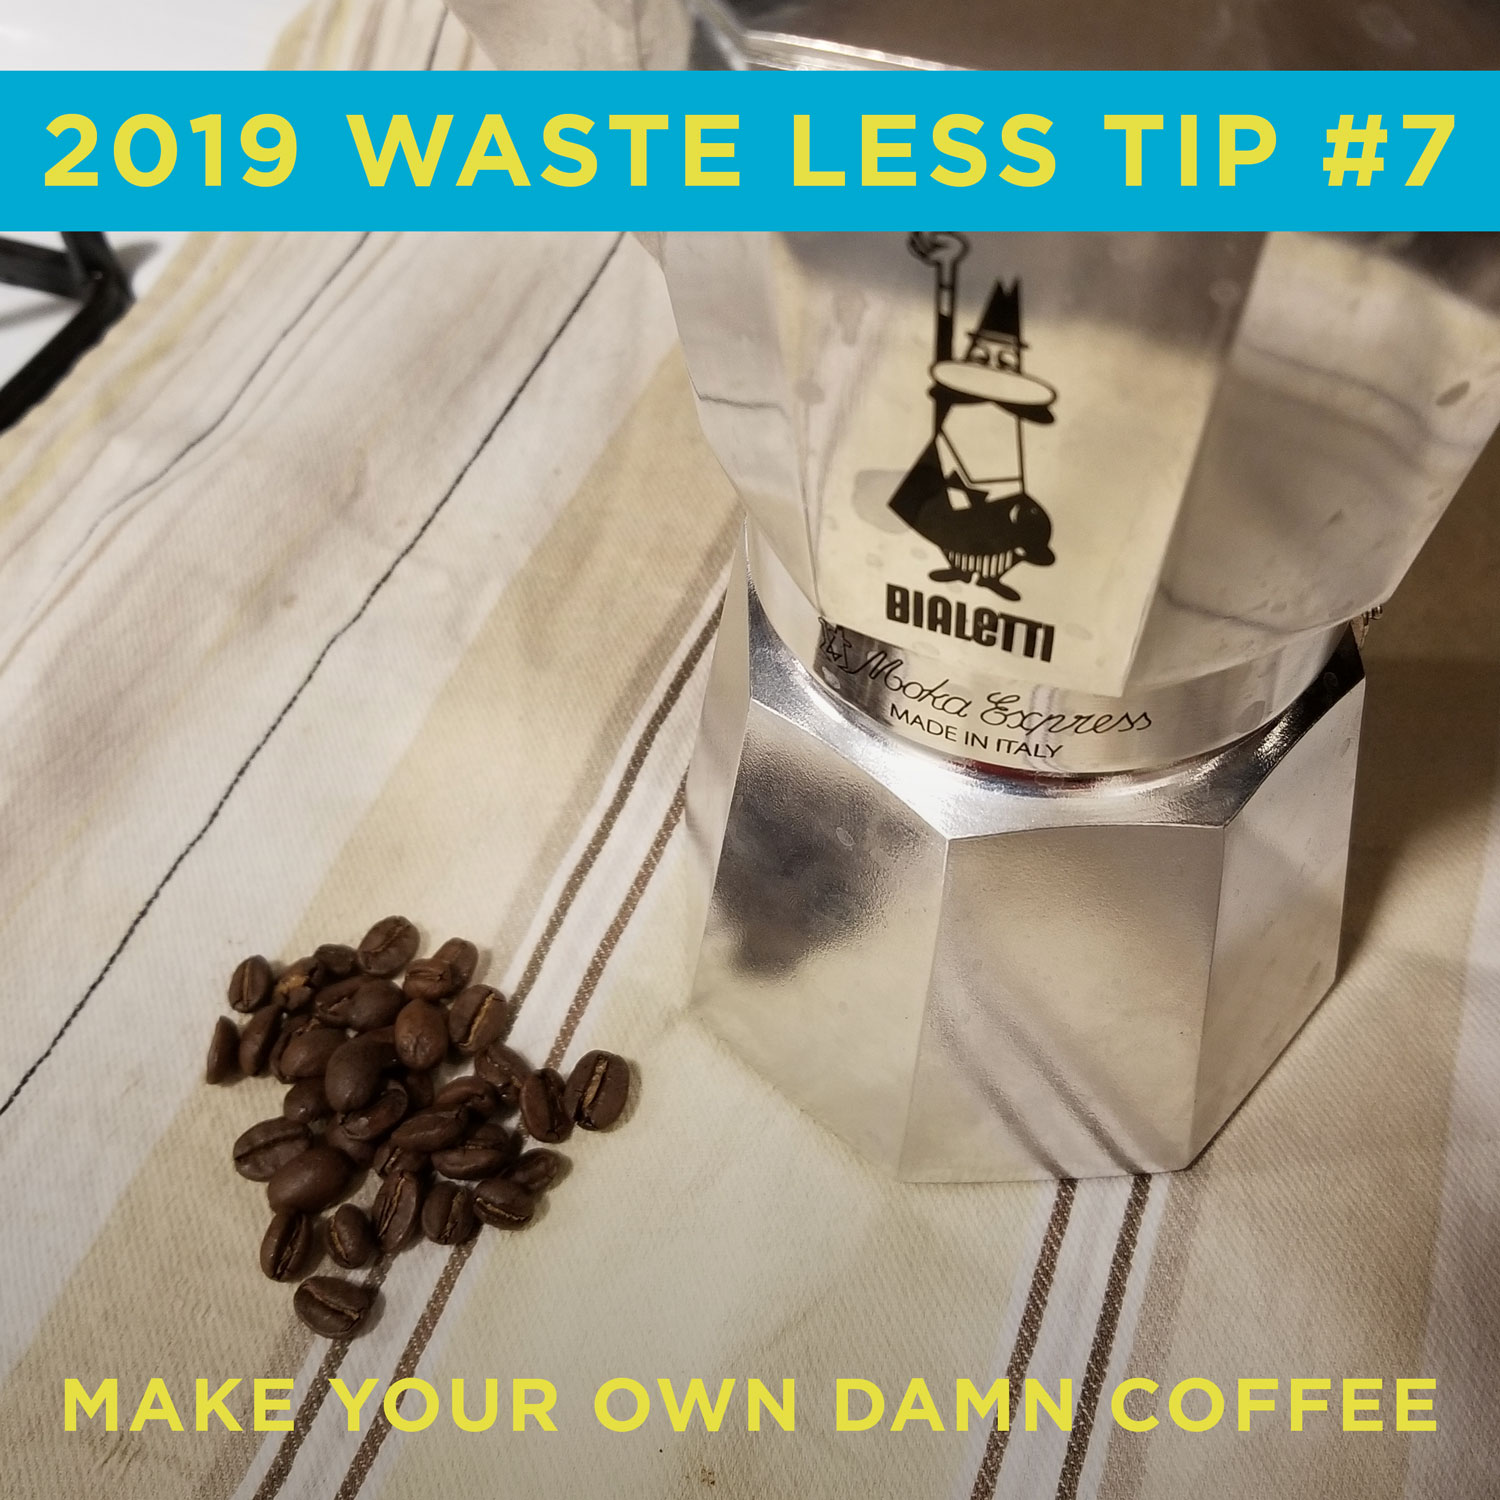 Environmentally friendly tip 7 is make your own coffee